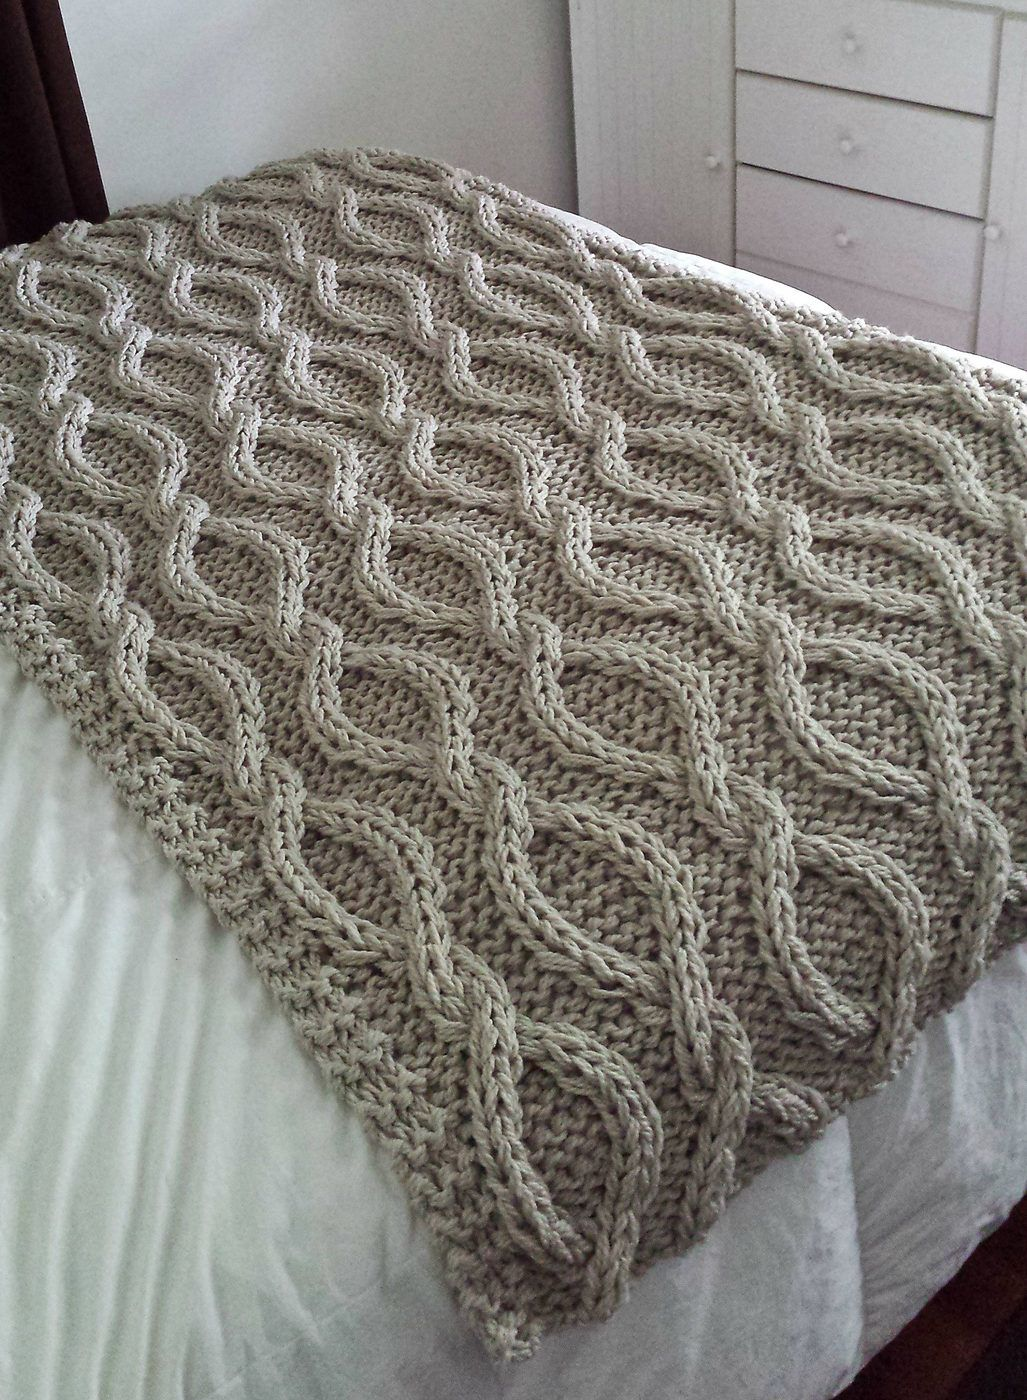 Cable afghan knitting patterns super bulky yarn cable knitting cable afghan knitting patterns bankloansurffo Image collections